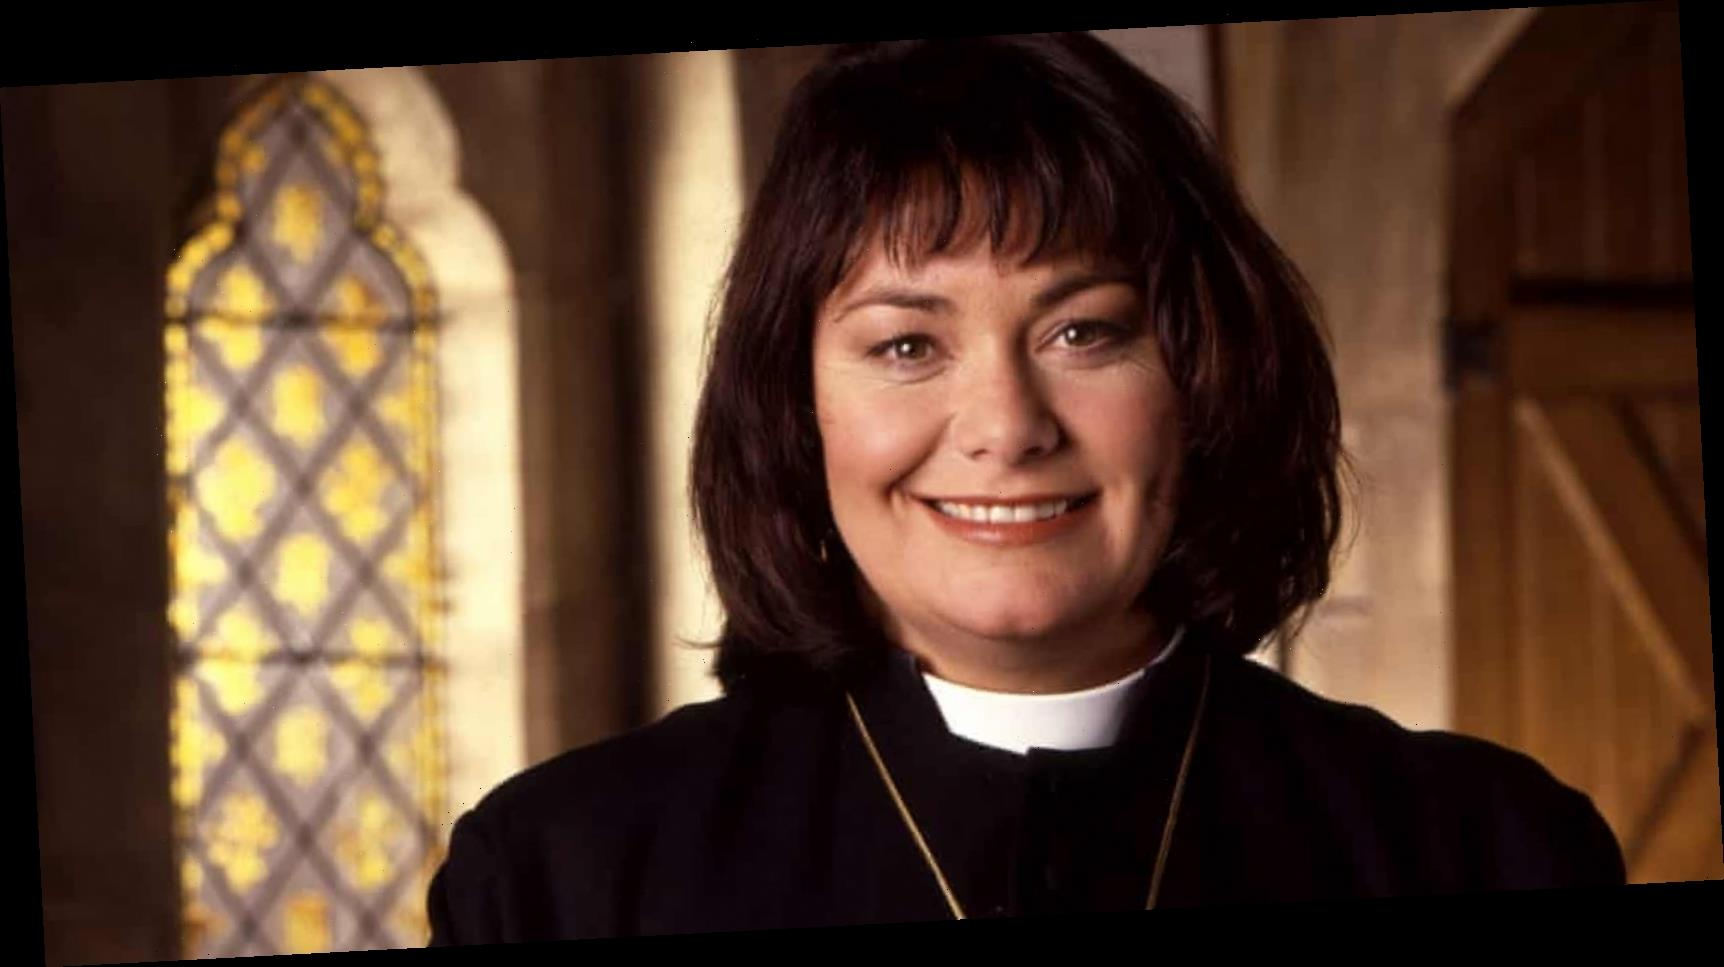 New episodes of Vicar Of Dibley are on their way for Christmas